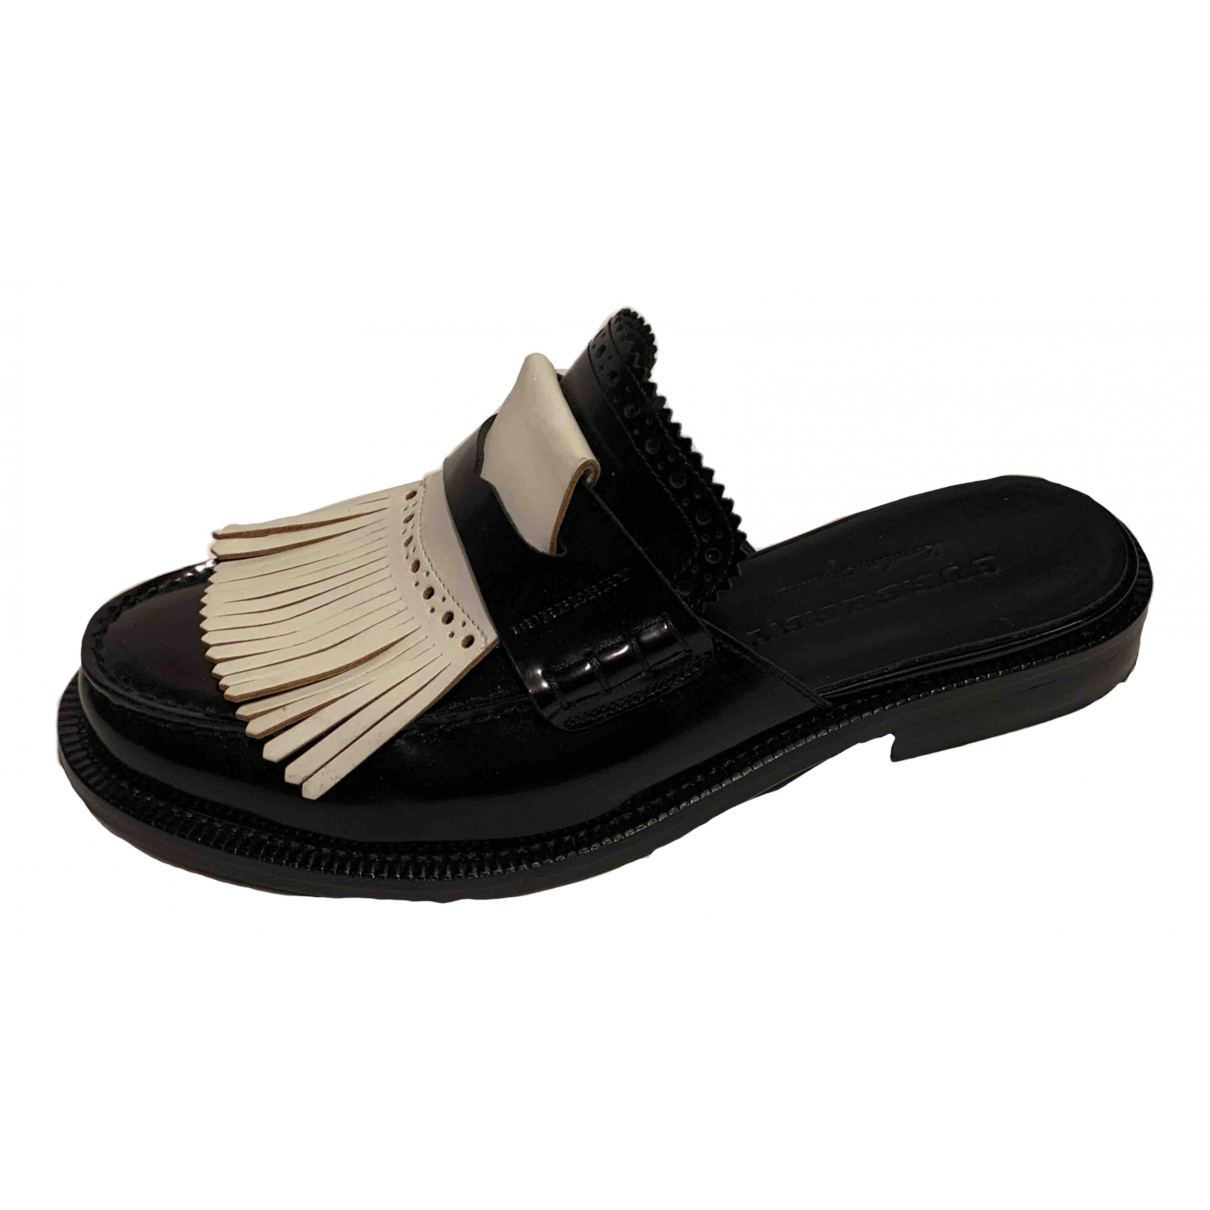 Burberry N Black Leather Sandals for Women 37.5 EU